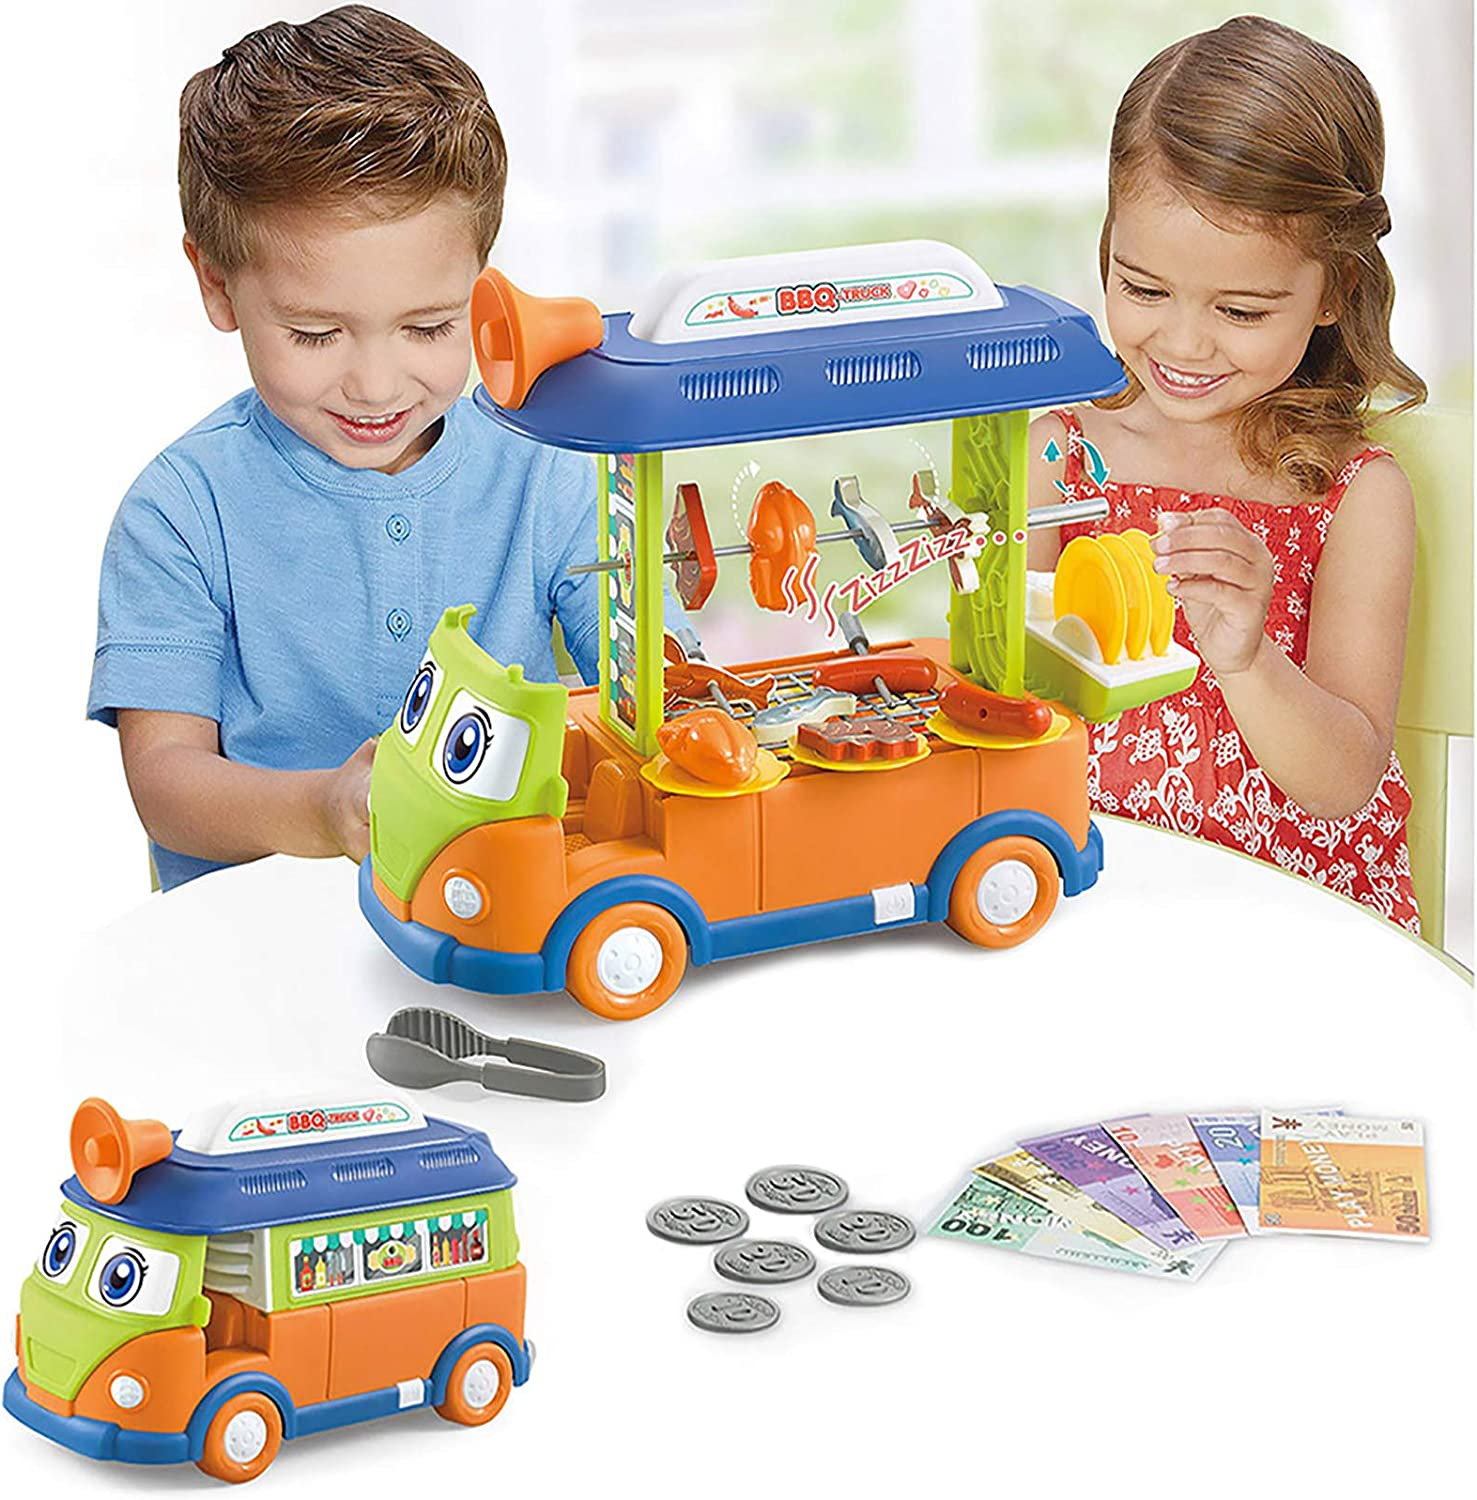 EylbKey BBQ Toy Cart Food Cart Play Set for Kids, Pretend Play Food Truck Set with Light and Sounds for Girls and Boys - Green Orange